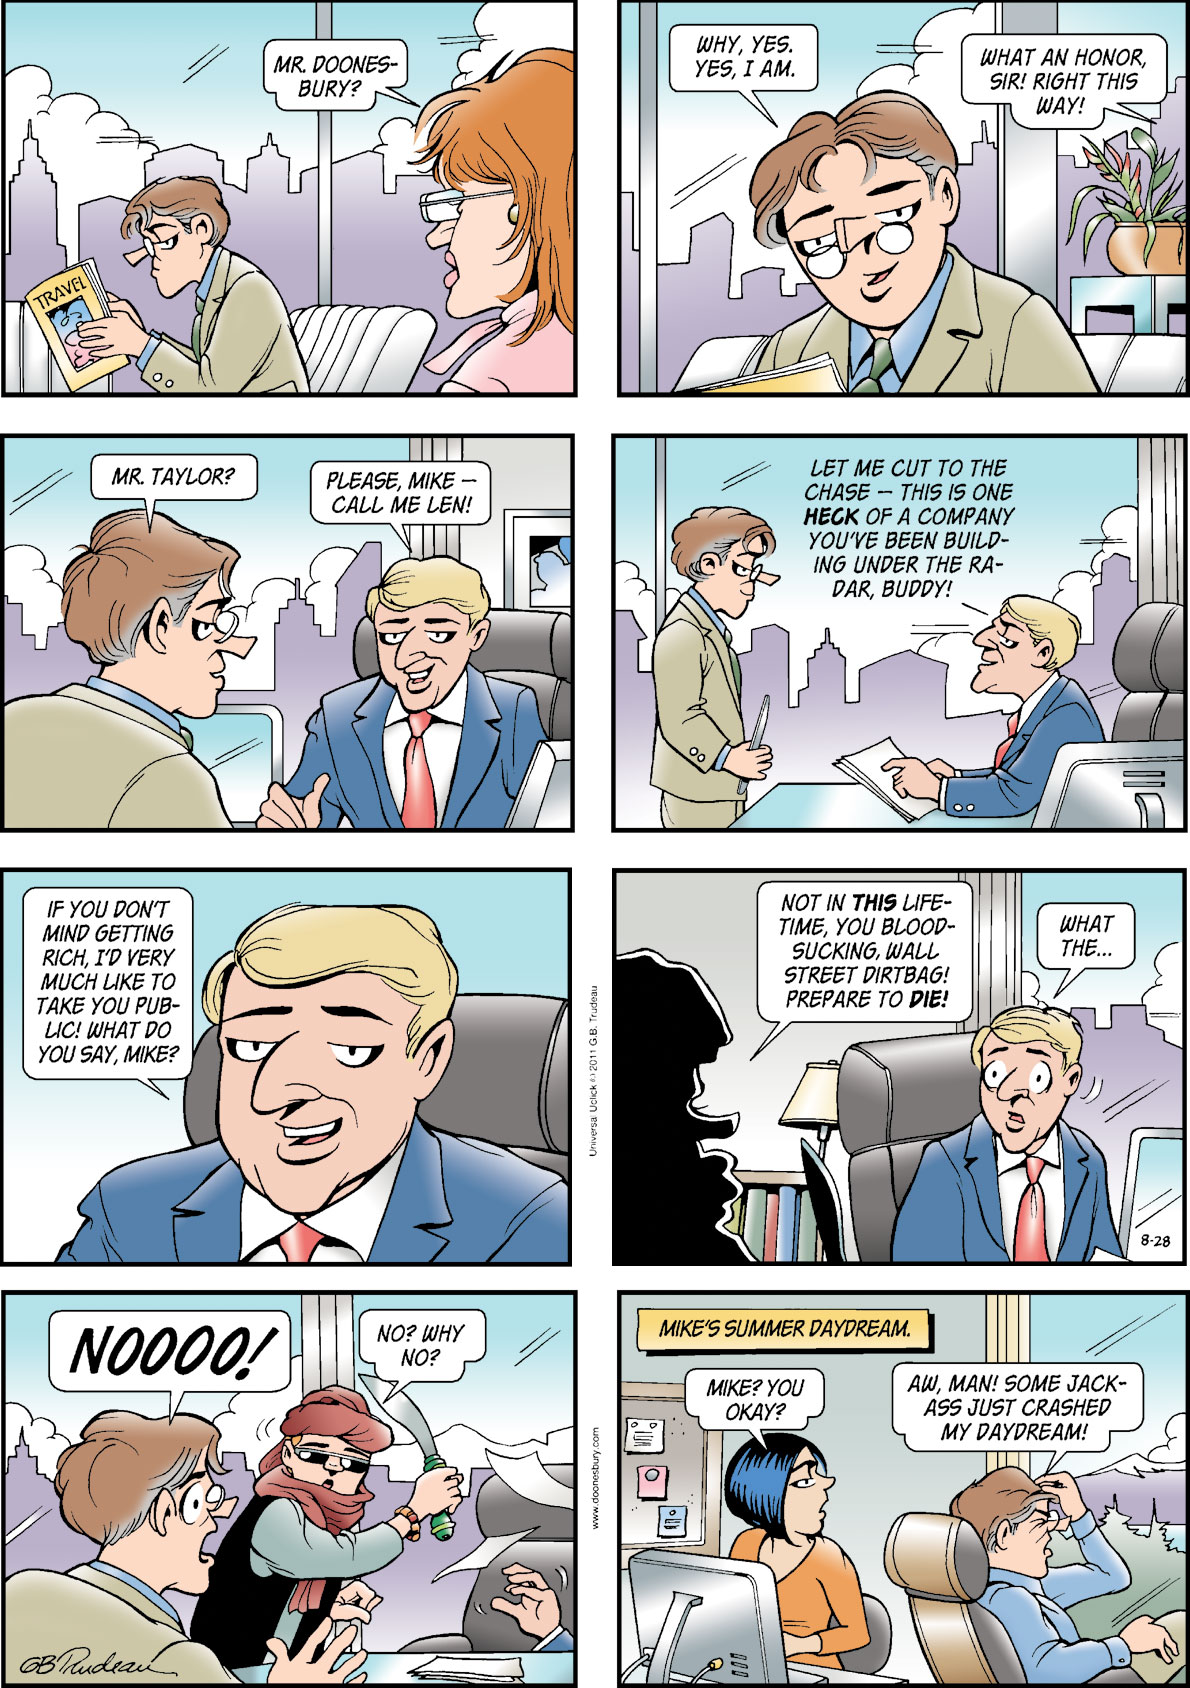 Secretary: Mr. Doonesbury? Mike: Why, yes, yes, I am. Secretary: What an honor, sir! Right this way! Mike: Mr. Taylor? Man: Please, Mike - call me Len! Let me cut to the chase - this is one heck of a company you've been building under the radar, buddy! If you don't mind getting rich, I'd very much like to take you public! What do you say, Mike? Red Rascal: Not in this lifetime, you bloodsucking, Wall Street dirtbag! Prepare to die! Man: What the... Mike: Noooo! Red Rascal: No? Why no? Kim: Mike? You okay? Mike: Aw, man! Some jackass just crashed my daydream! Mike's summer daydream.